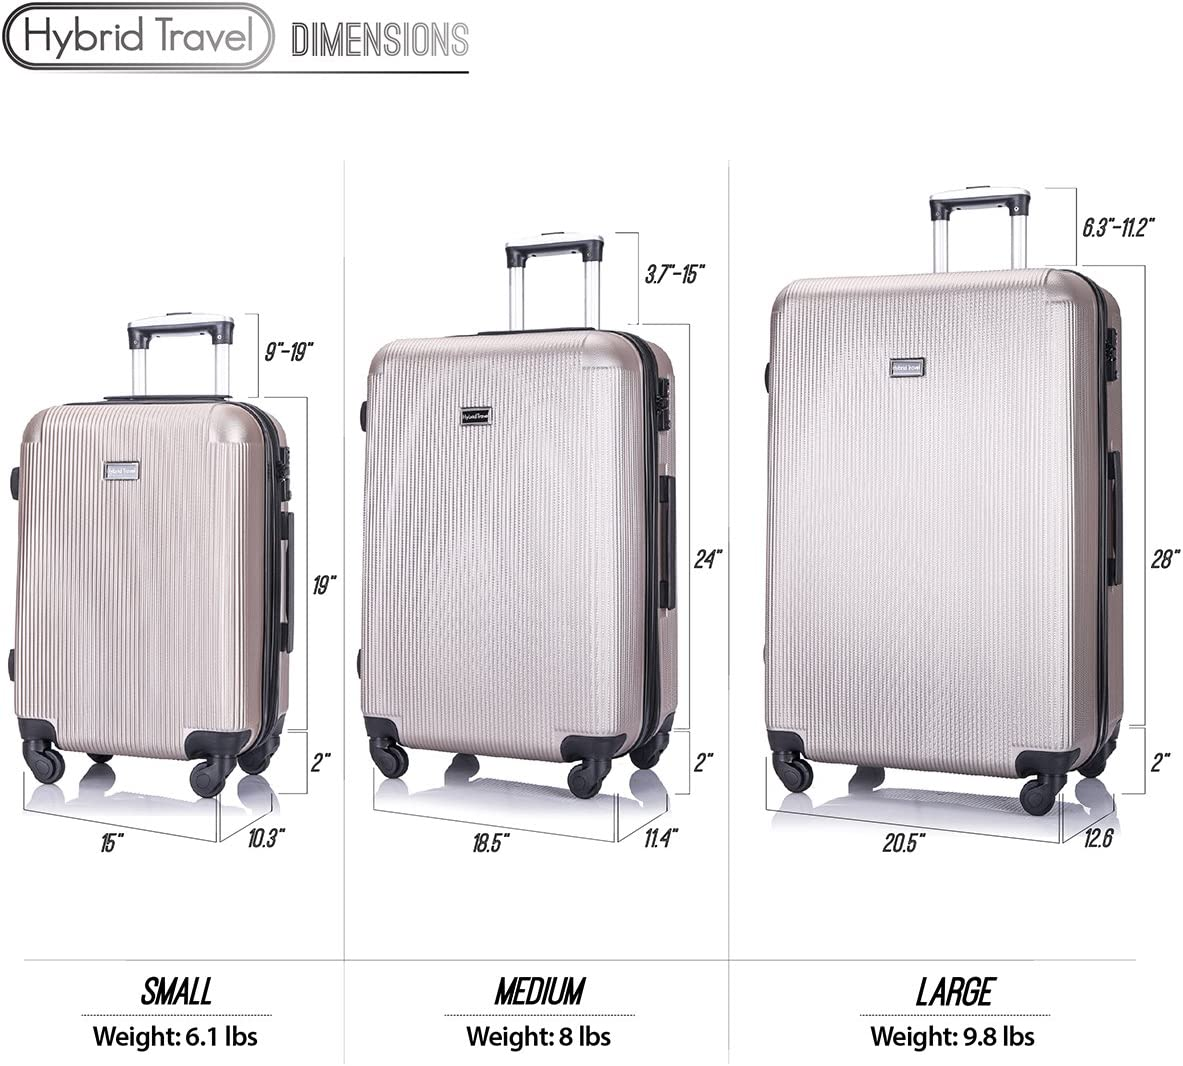 Champagne 3 Pieces HyBrid /& Company Luggage Set Durable Lightweight Hard Case Spinner Suitcase LUG3-LY71